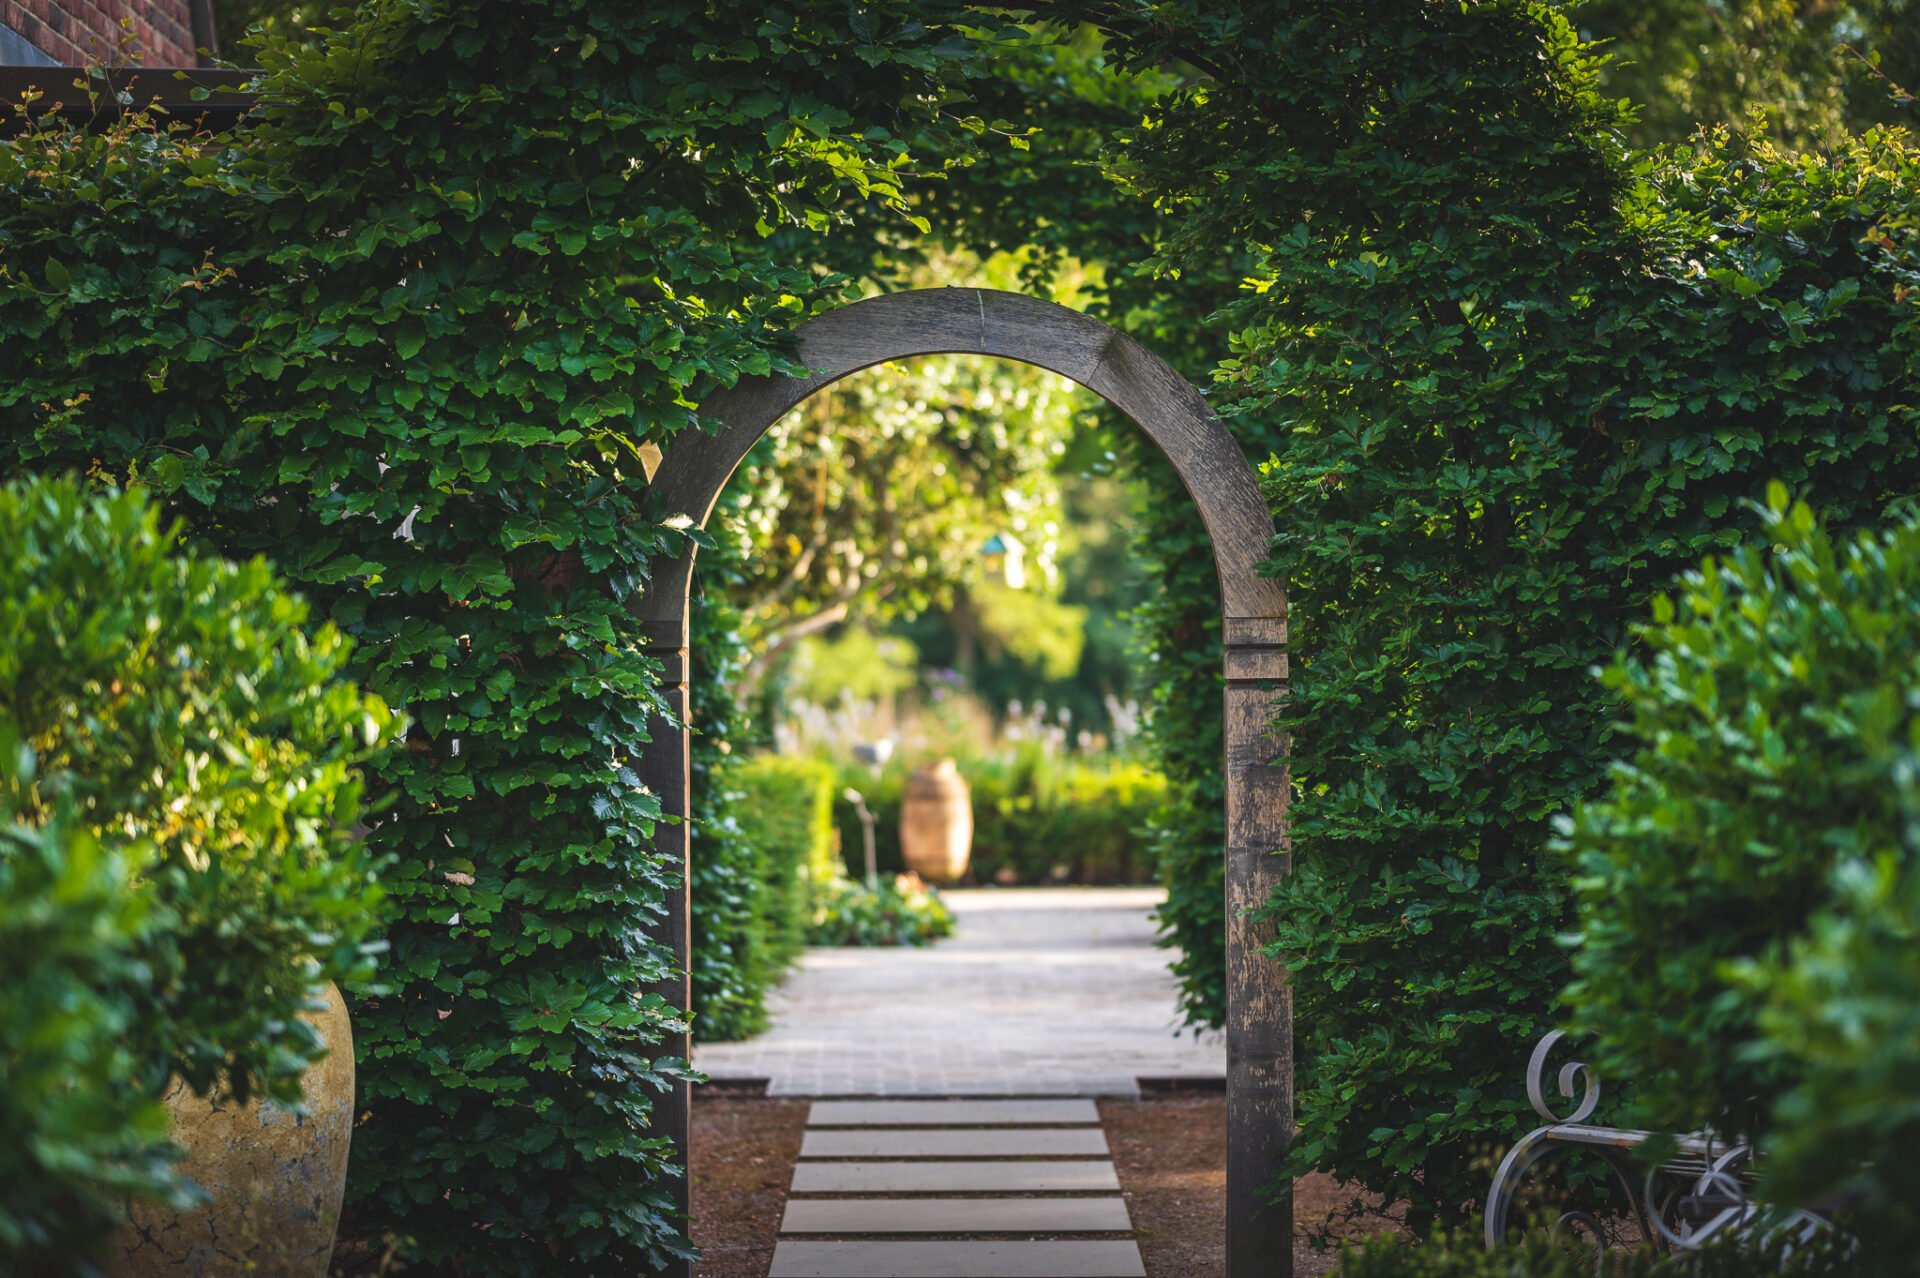 A beautiful entrance to the garden at Pye Hill House